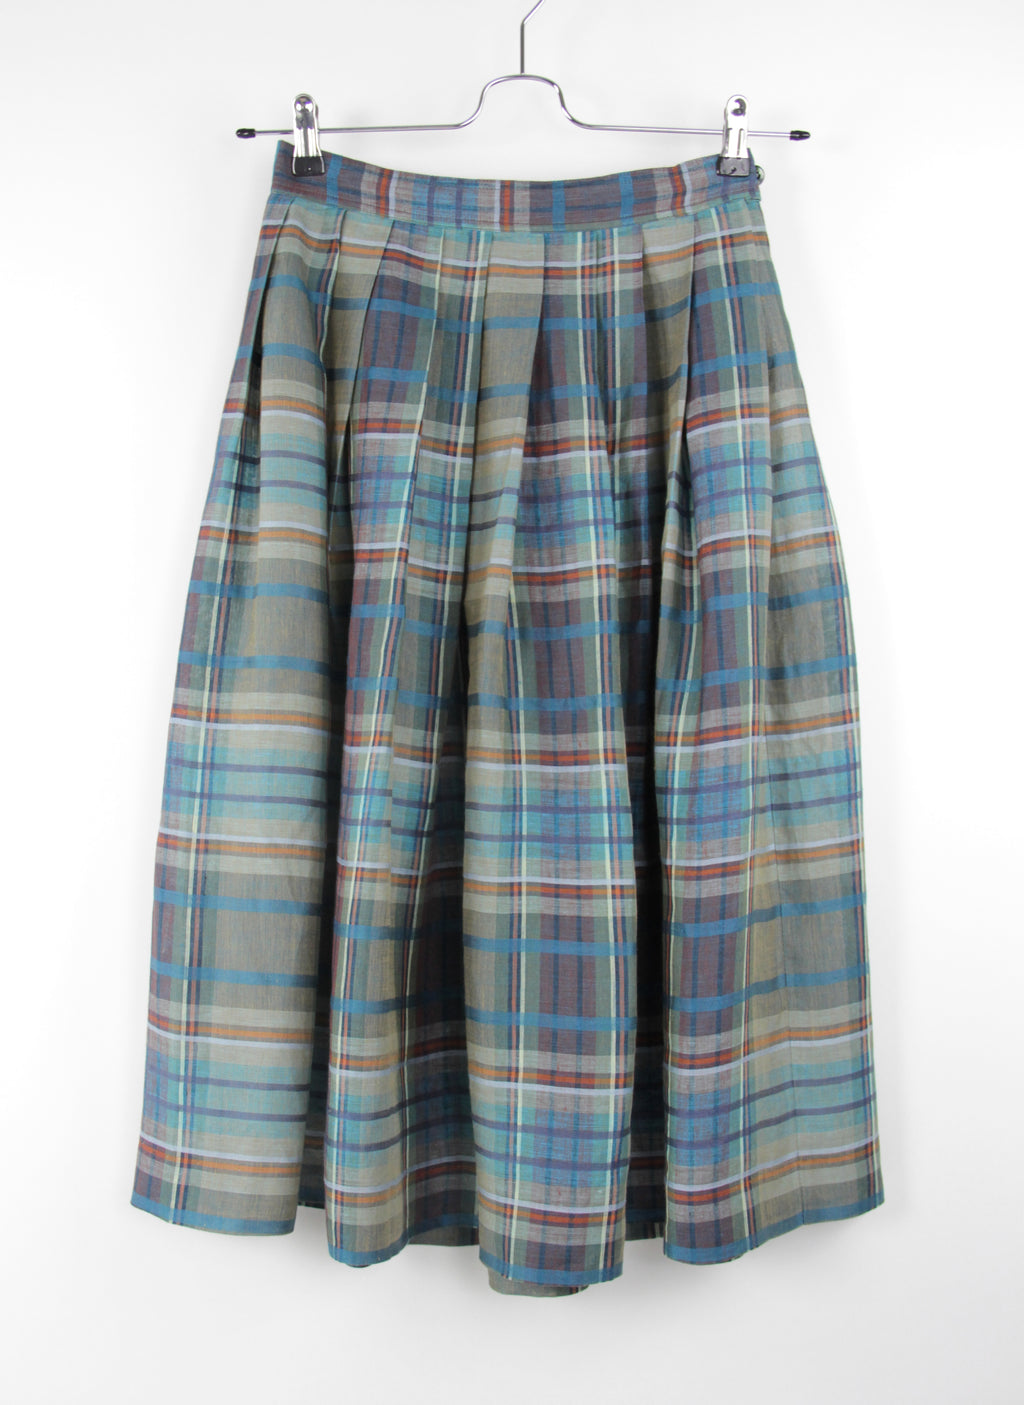 Max Mara Pure Linen Plaid Pleated Summer Midi Skirt, Size M